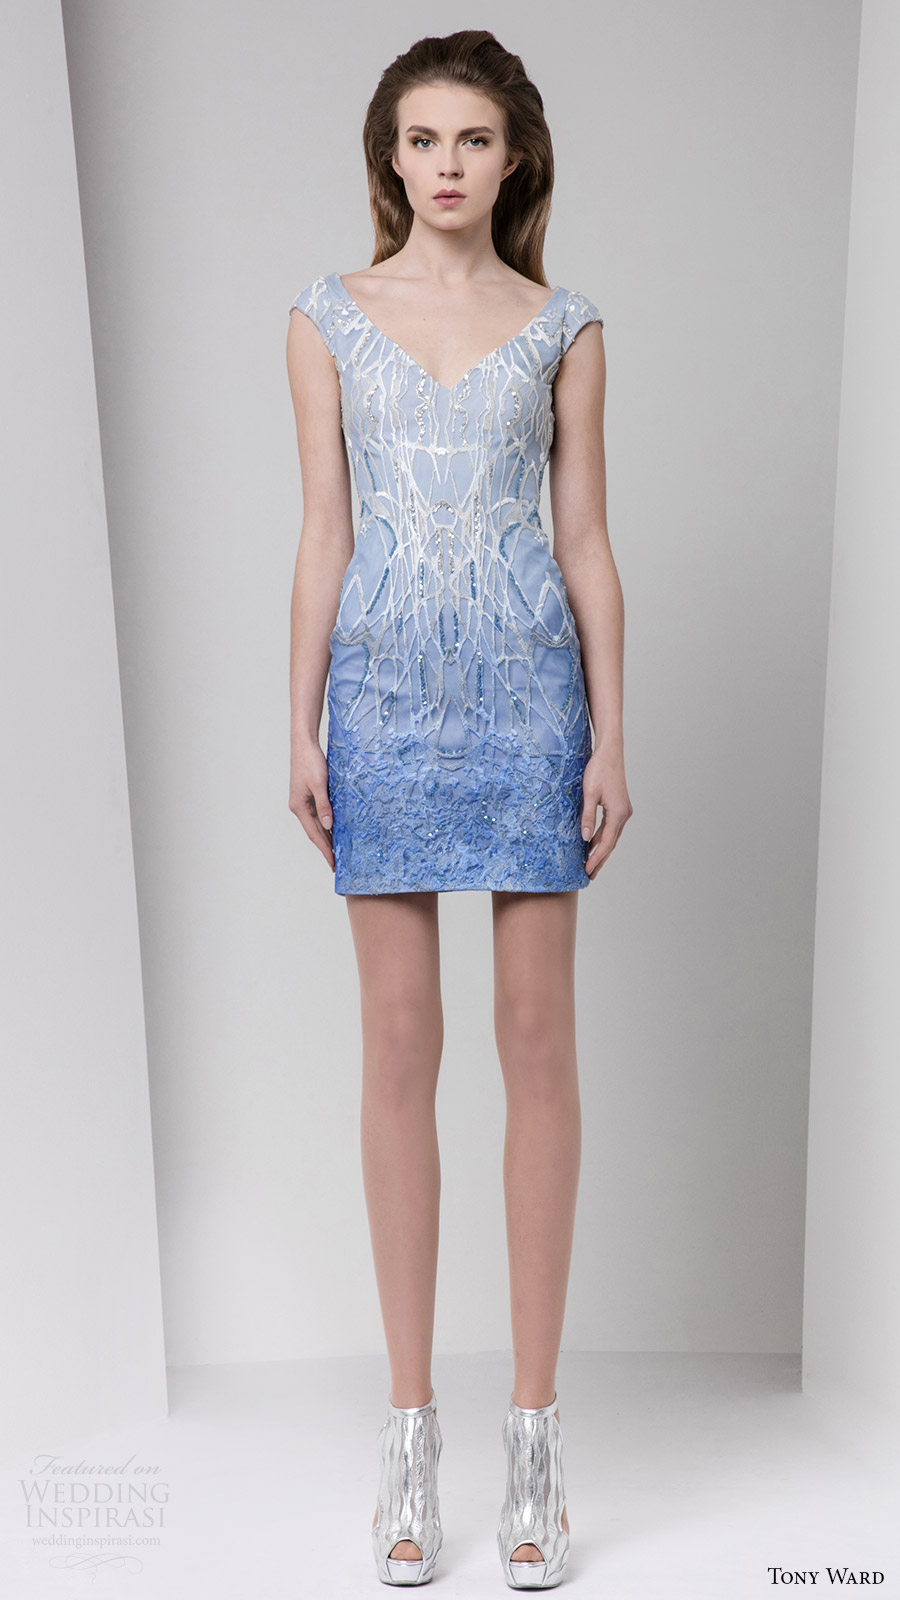 tony ward fall 2016 rtw cap sleeves jewel neck embellished short dress light blue ombre